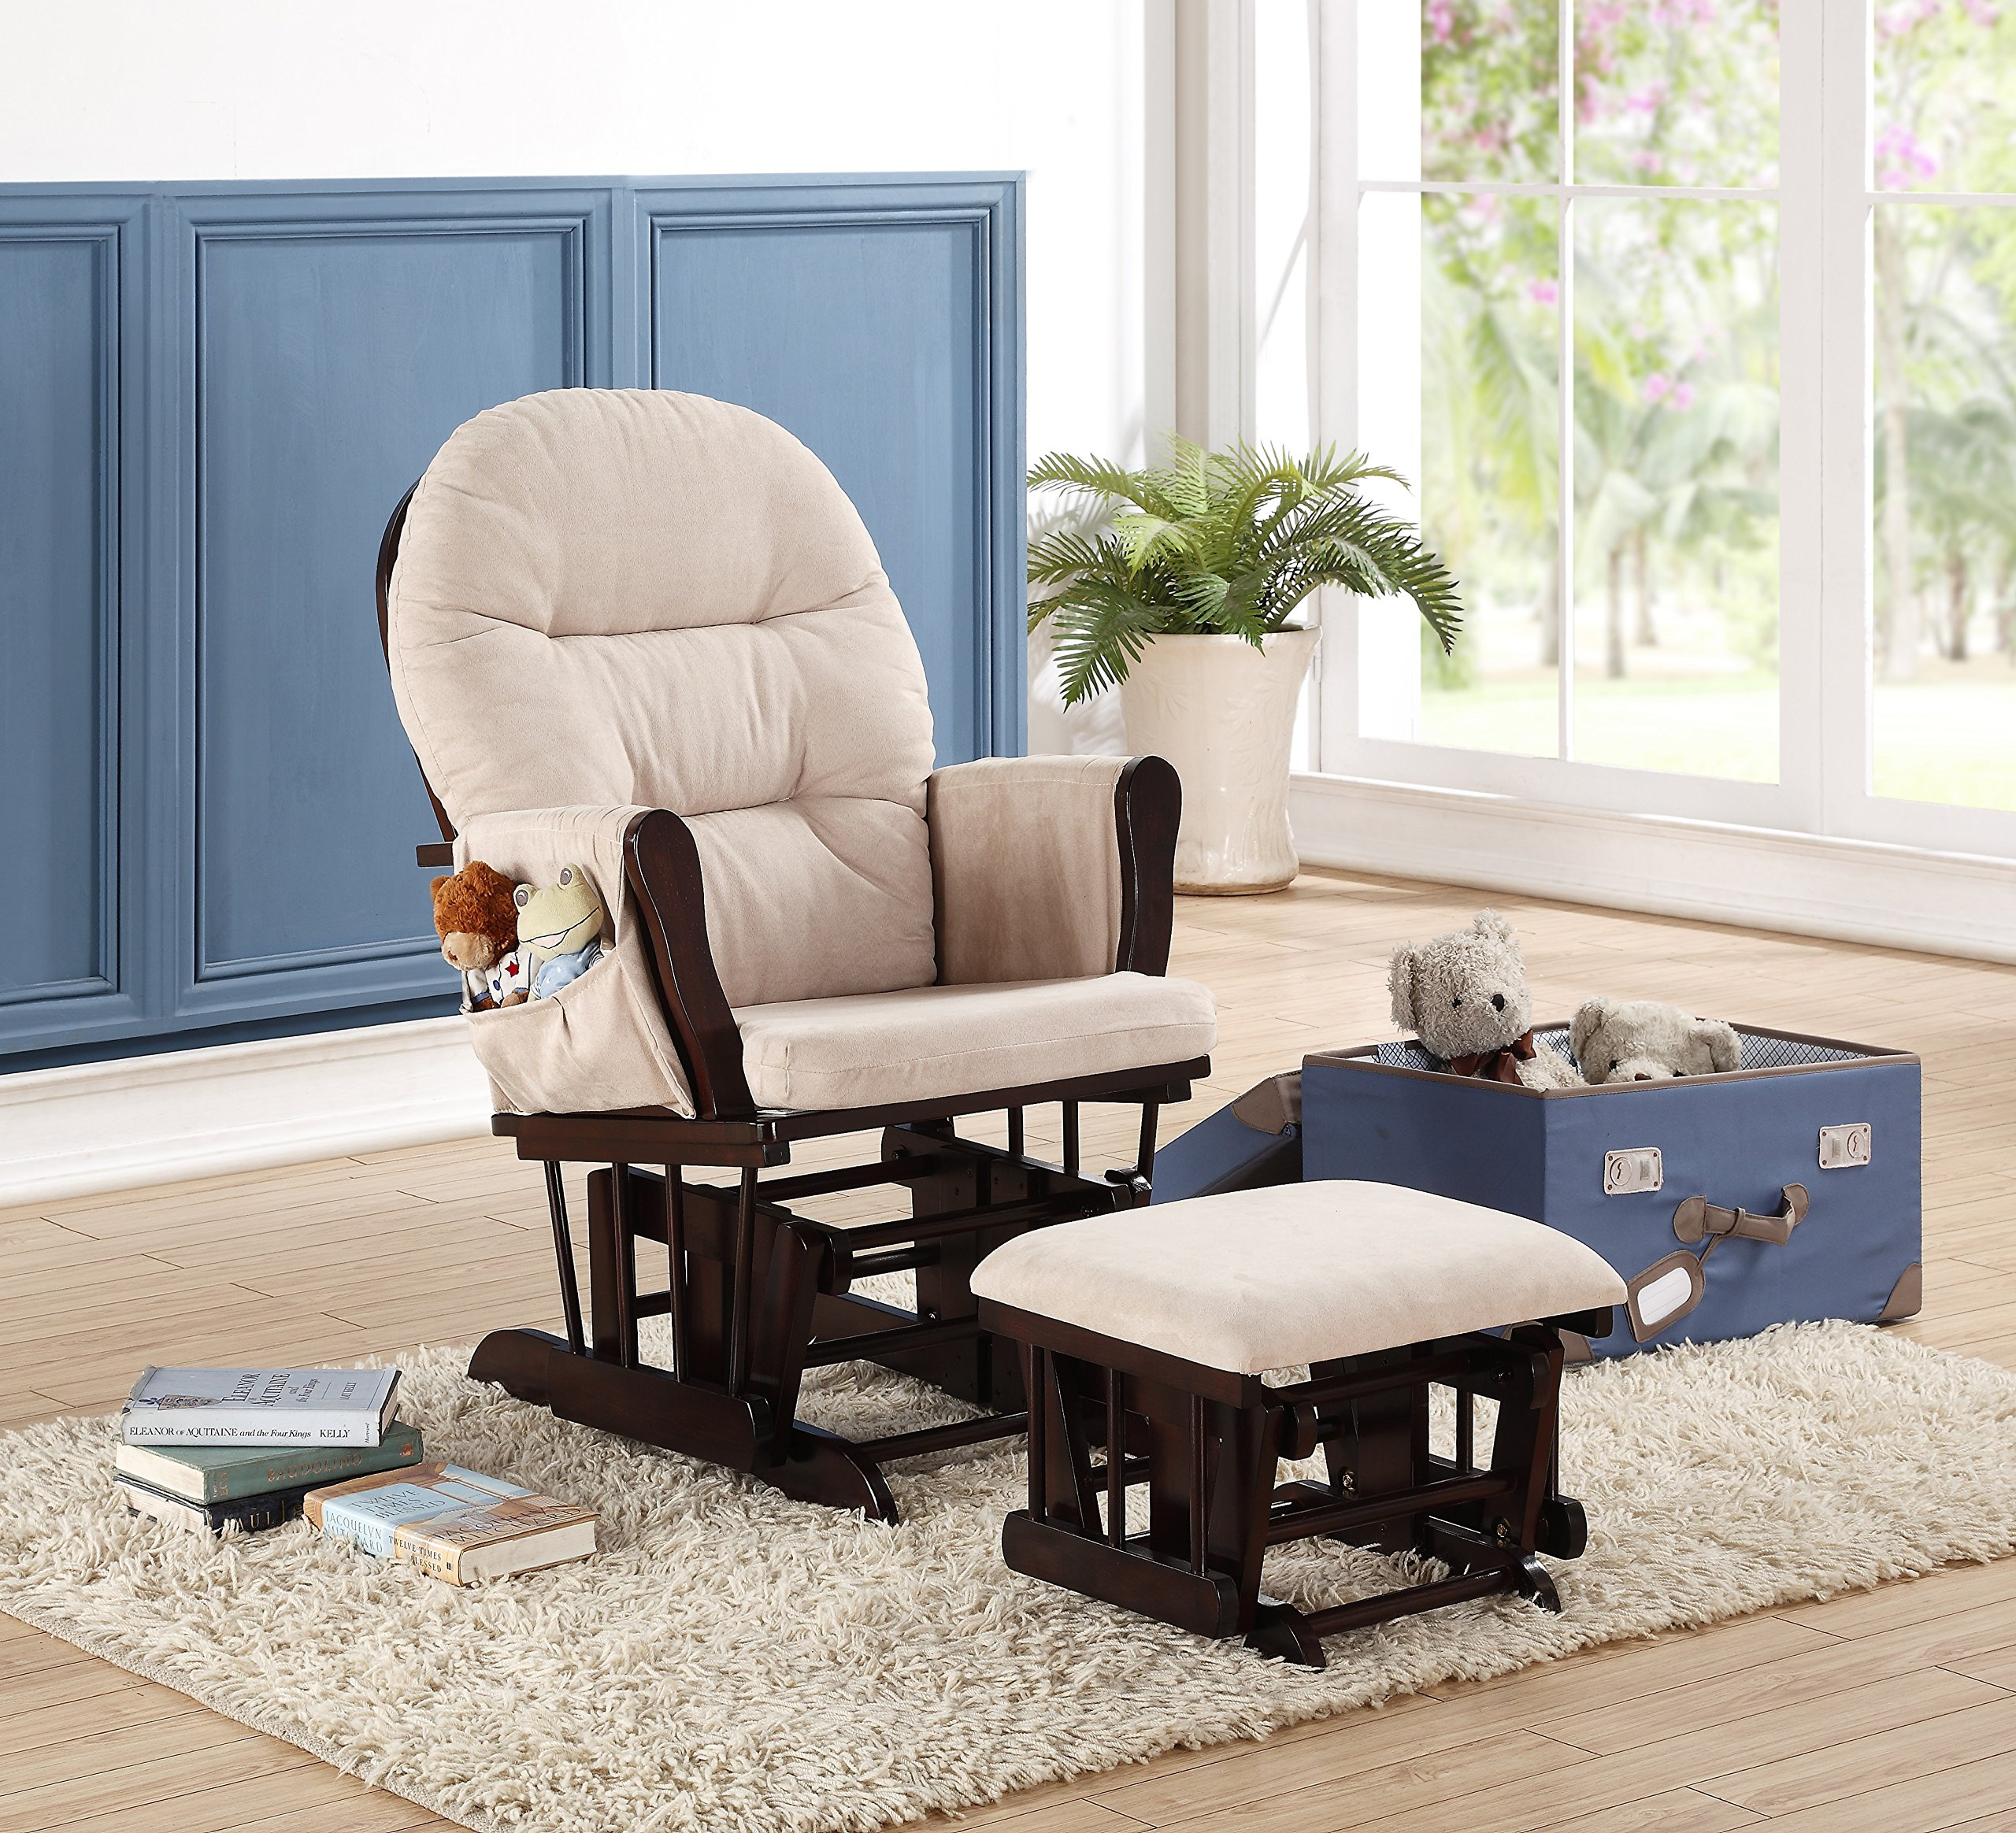 Naomi Home Brisbane Glider & Ottoman Set with Cushion in Cream and Finish in Espresso by Naomi Home